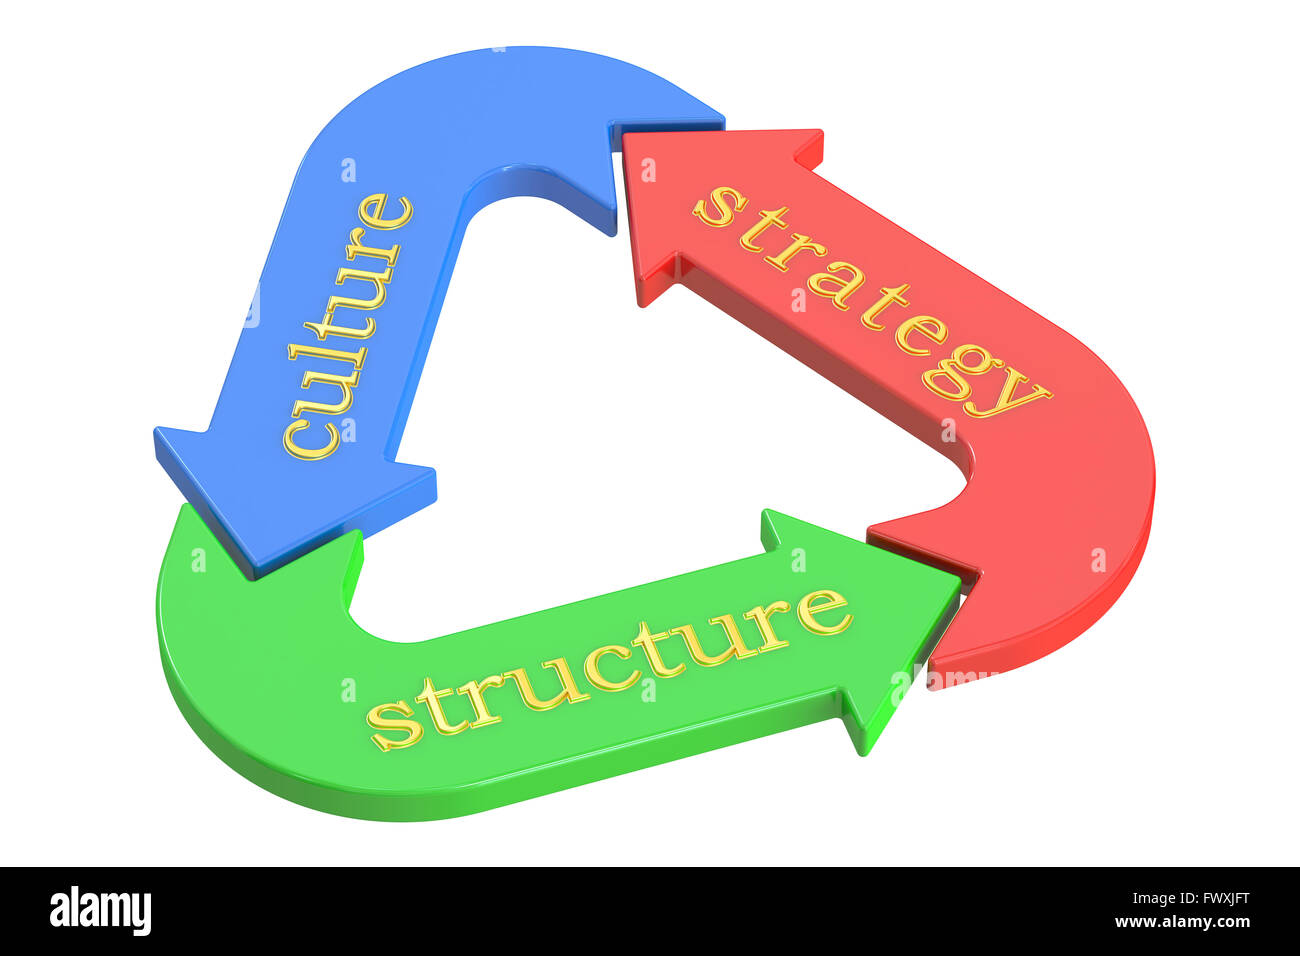 strategy and culture The noise around the strategy vs culture debate has reached deafening levels my question is this why elevating one position over the other is a rather sophomoric attempt to present a false .